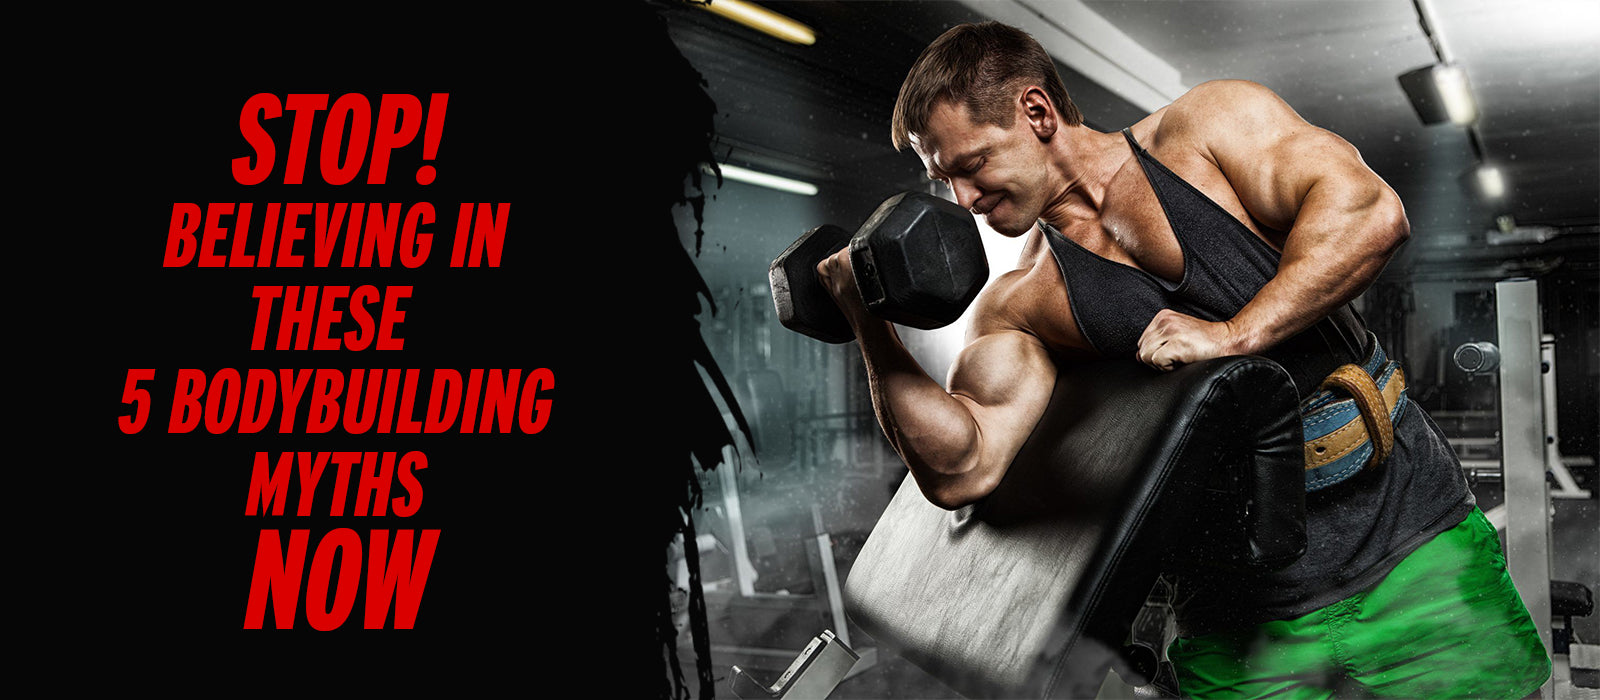 Stop! Believing In These 5 Bodybuilding Myths Now